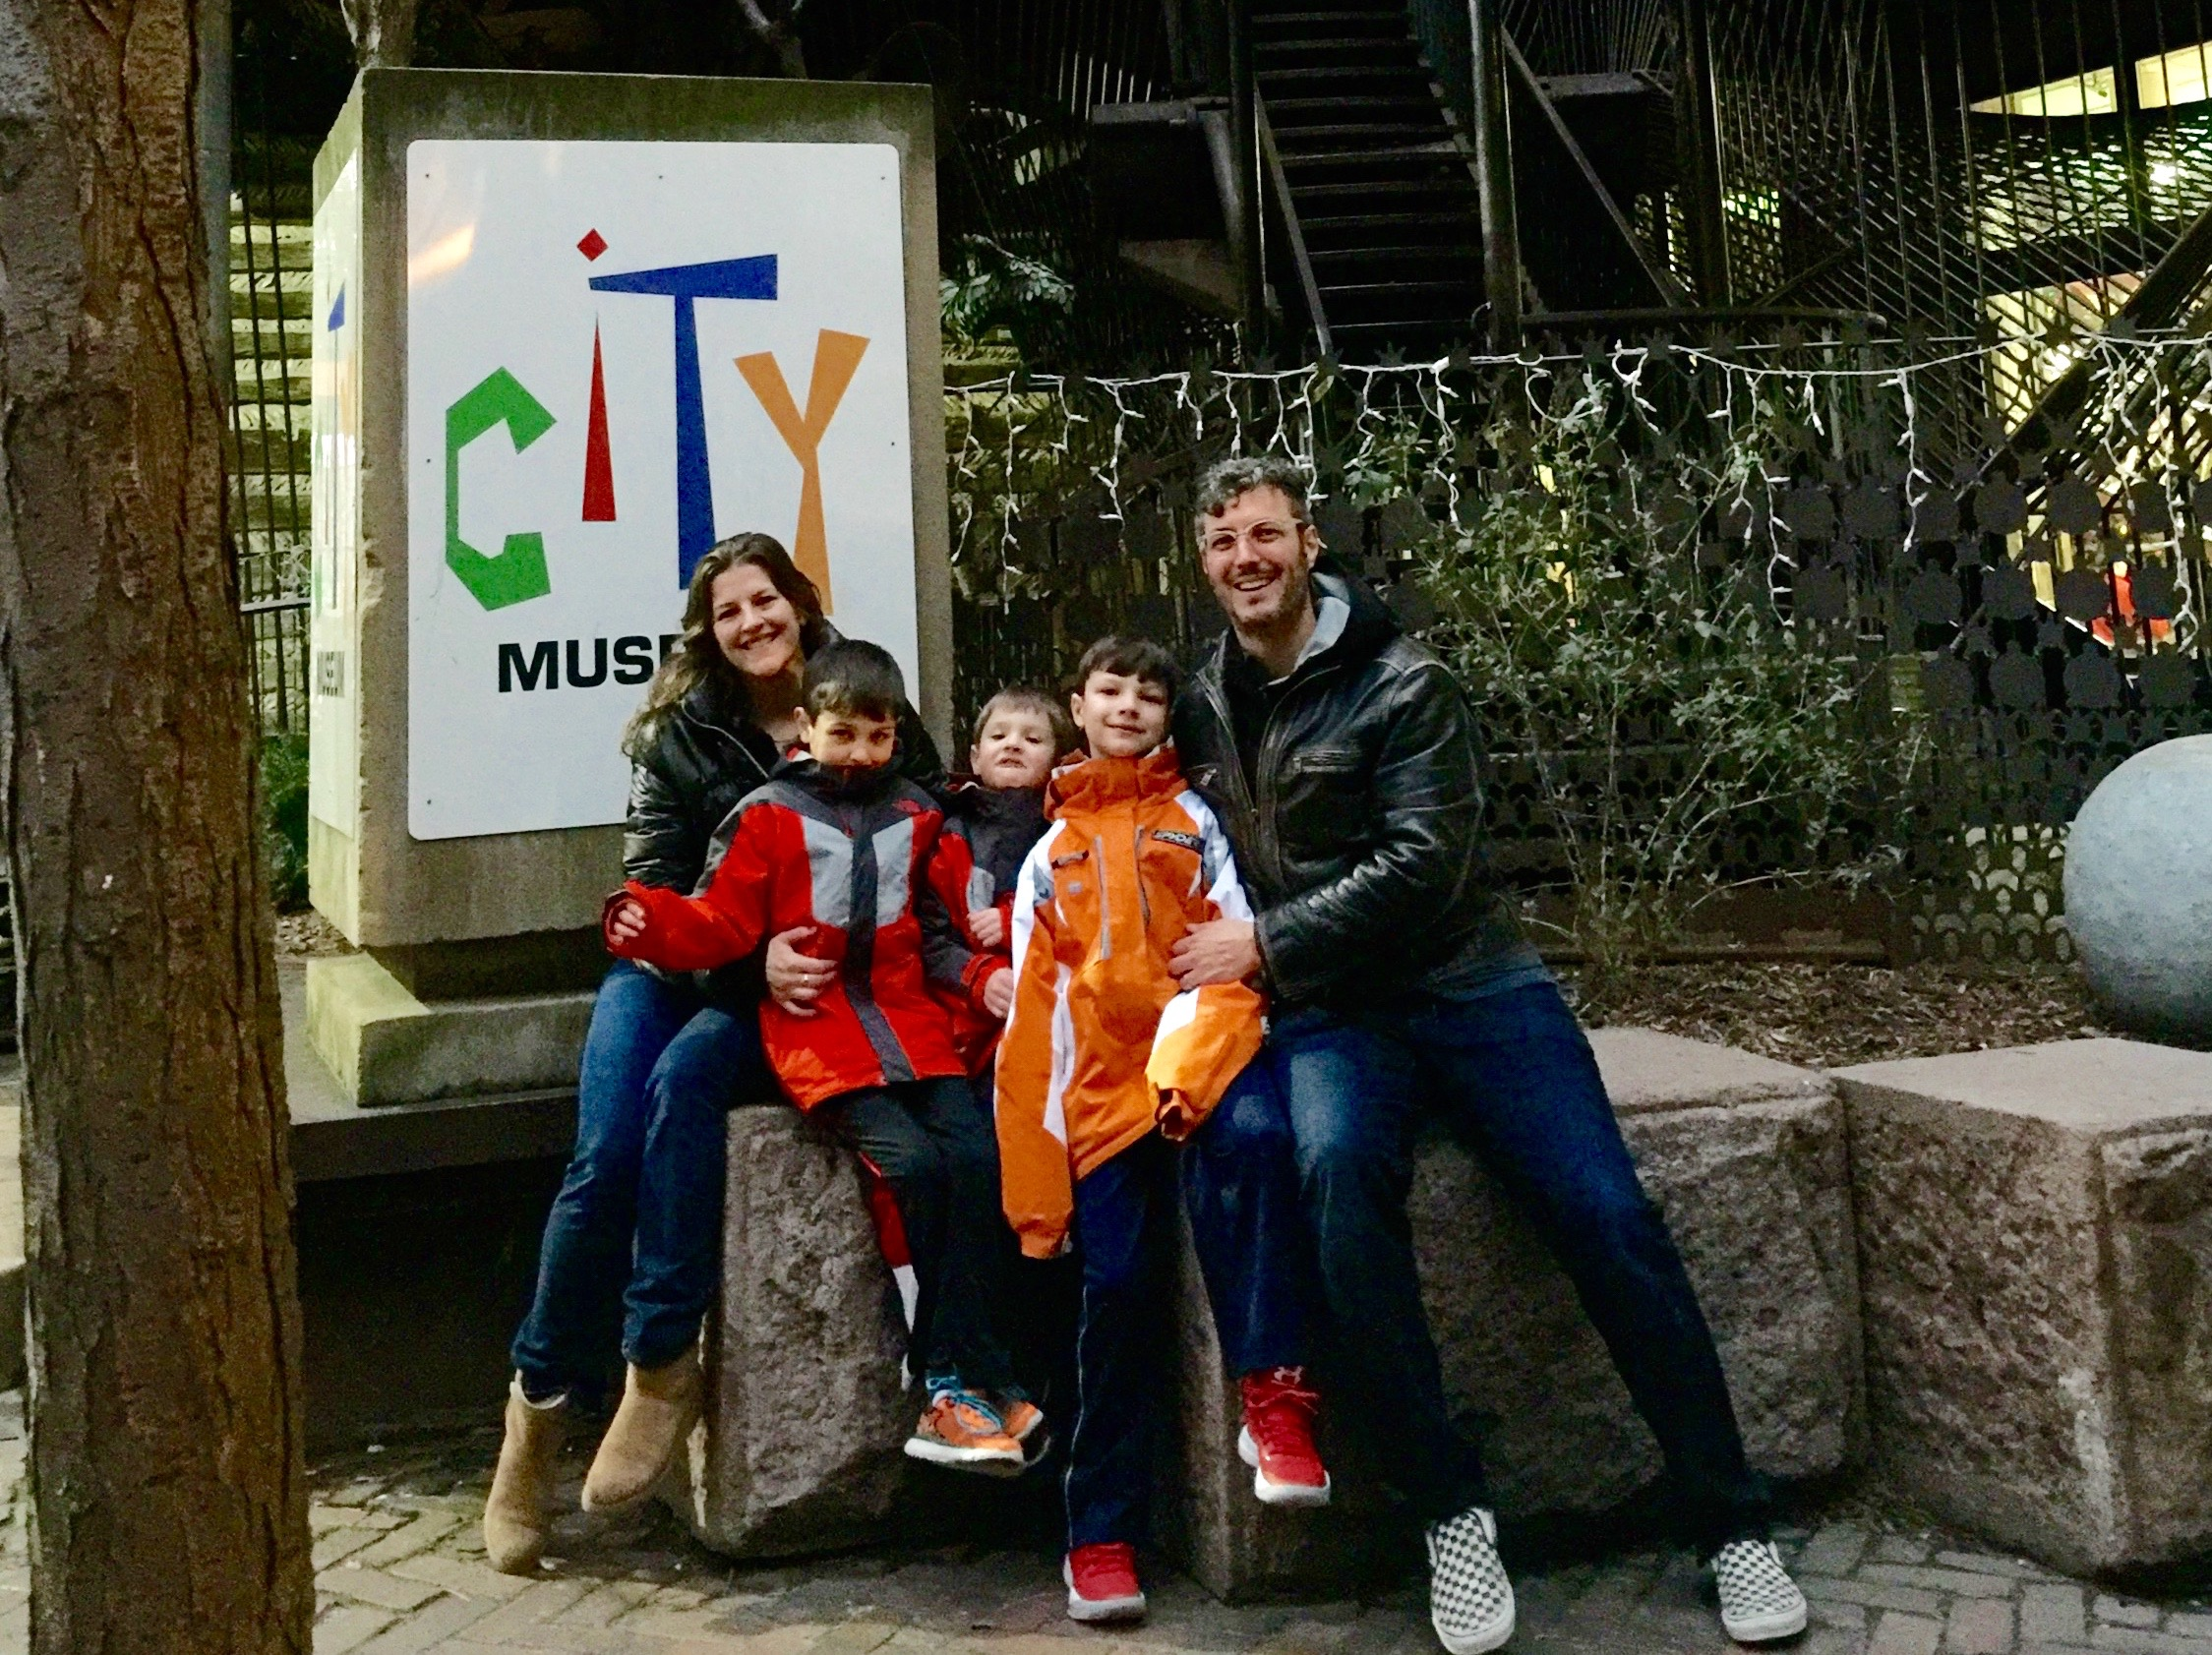 City Museum, Altschuler Family